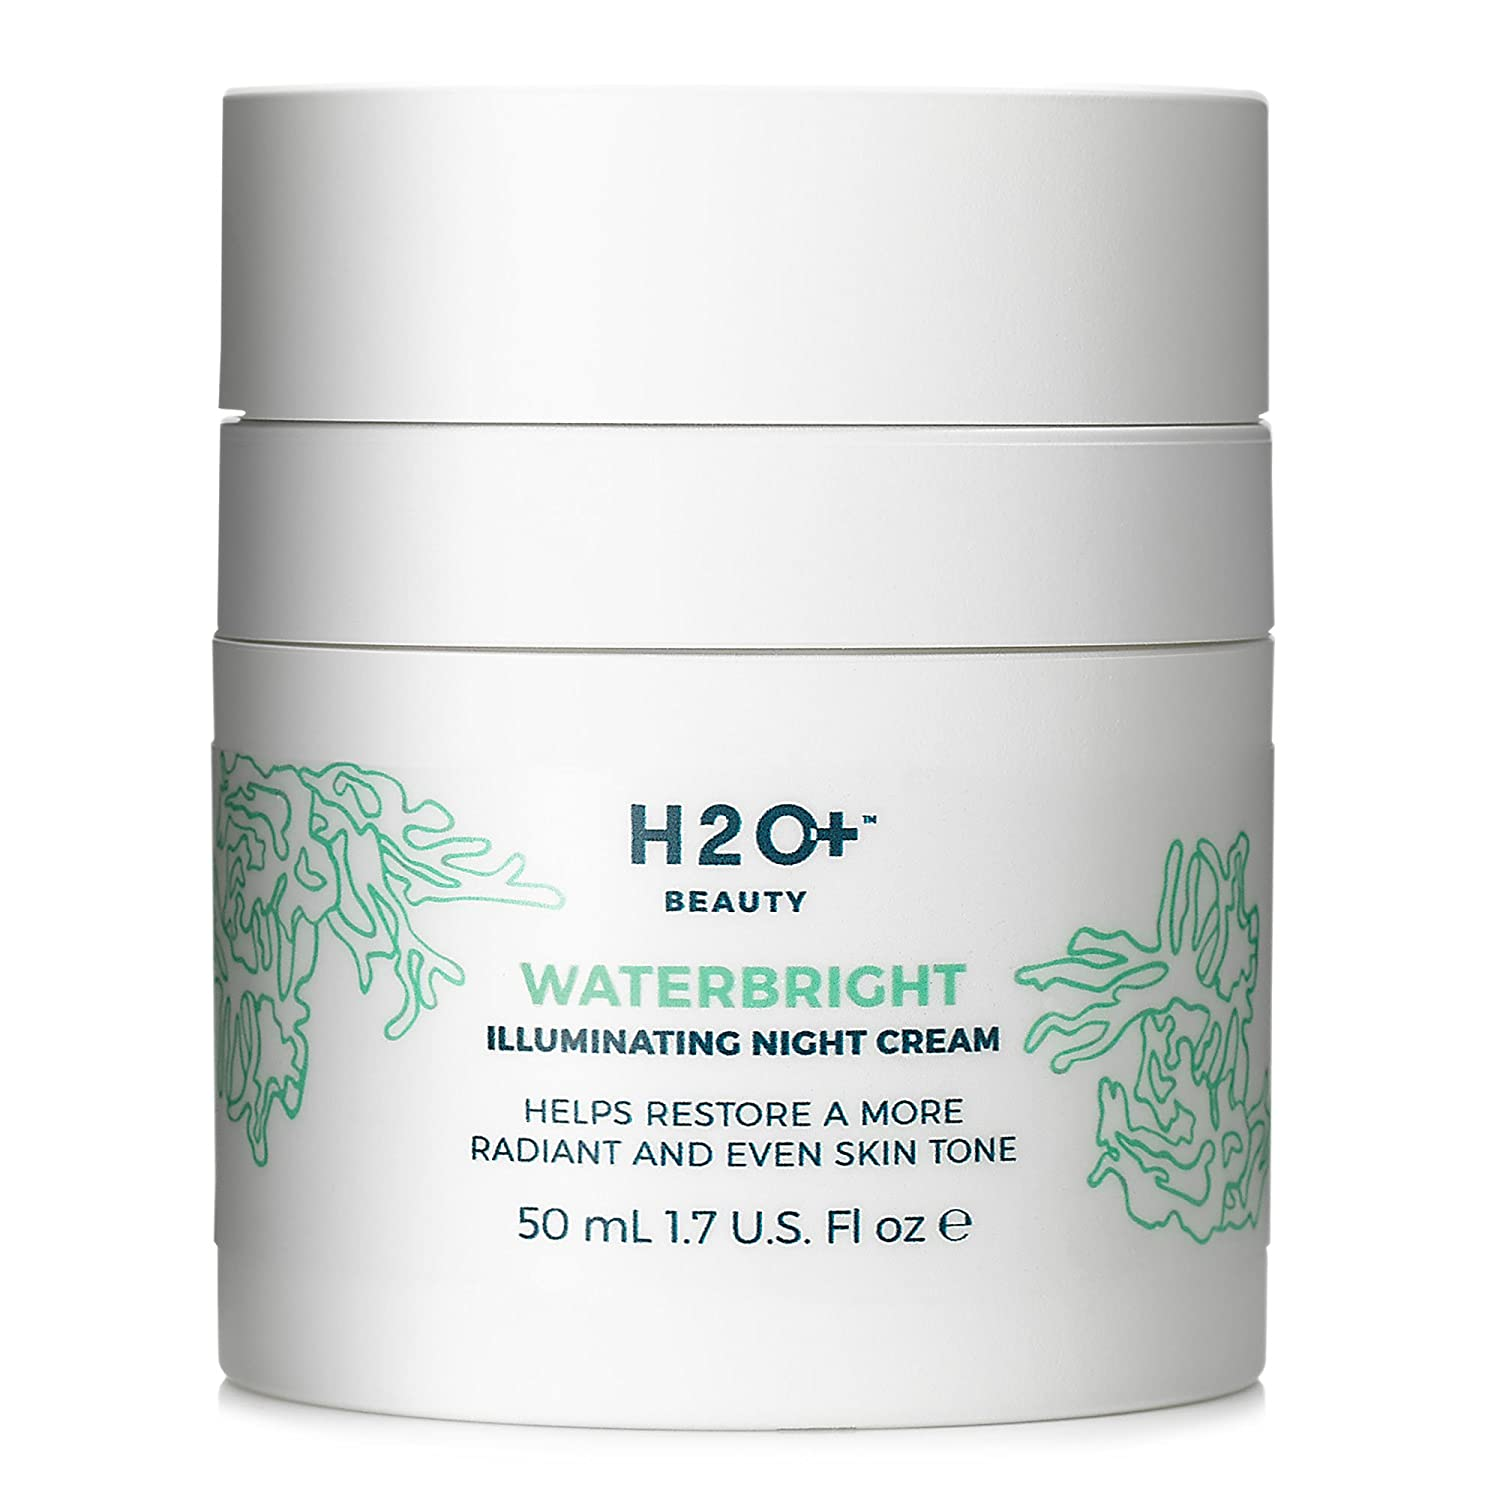 H2O PLUS BEAUTY Luxury goods Waterbright Illuminating Helps Rest Cream excellence Night